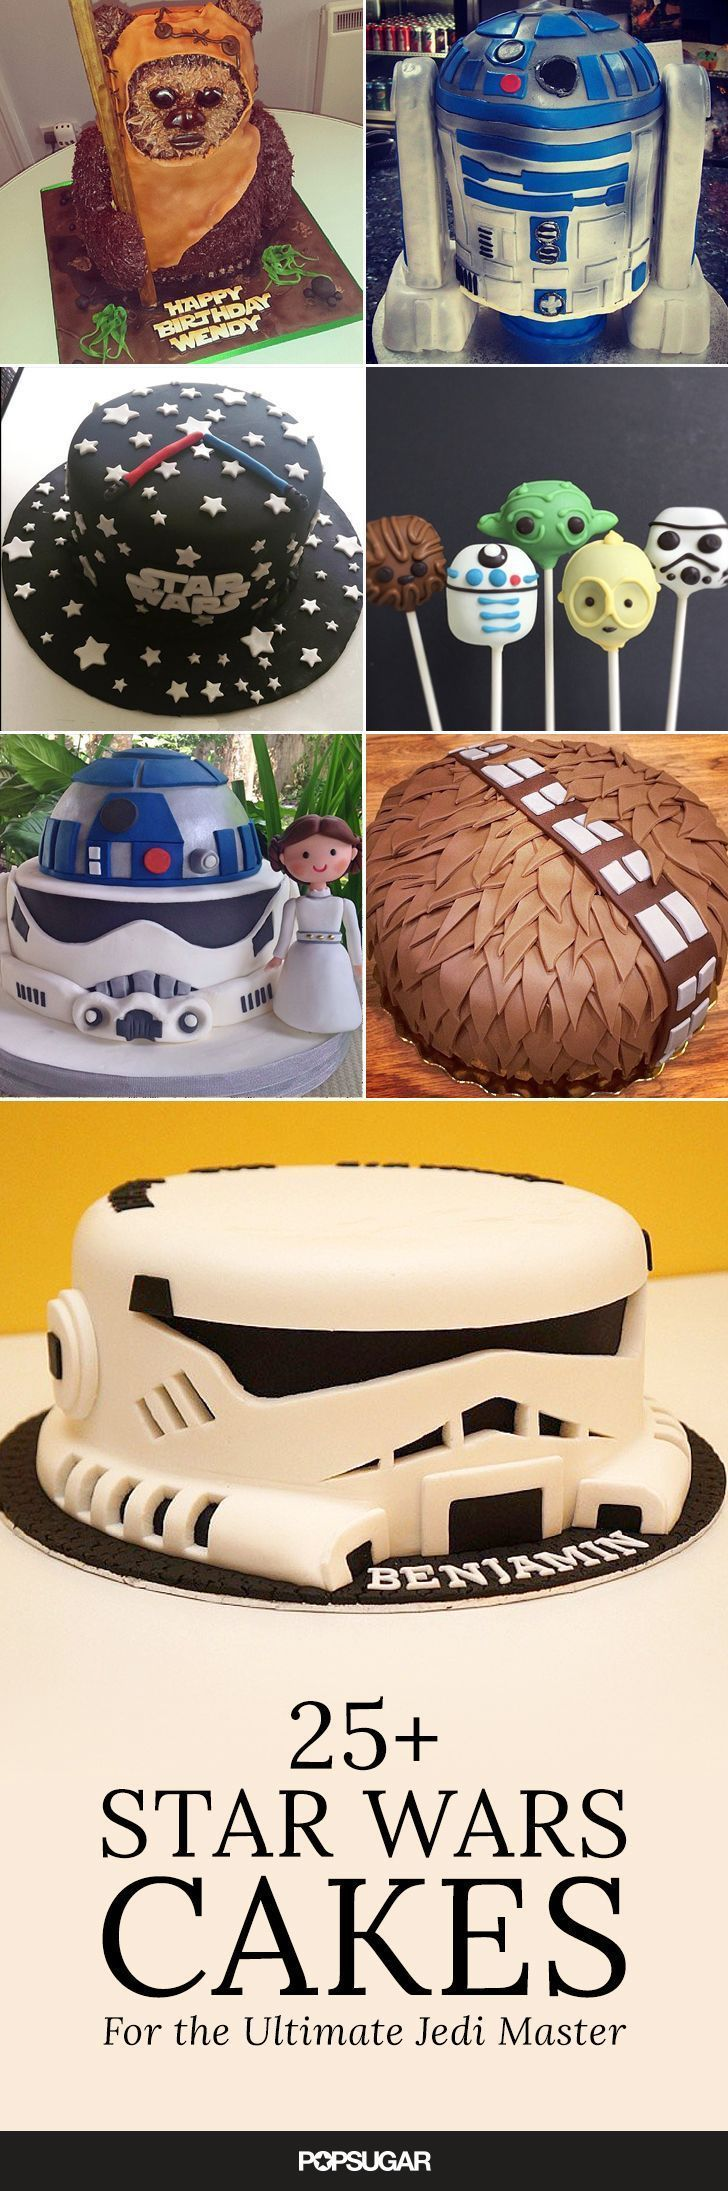 May the Force Be With Your Kids Birthday Cakes